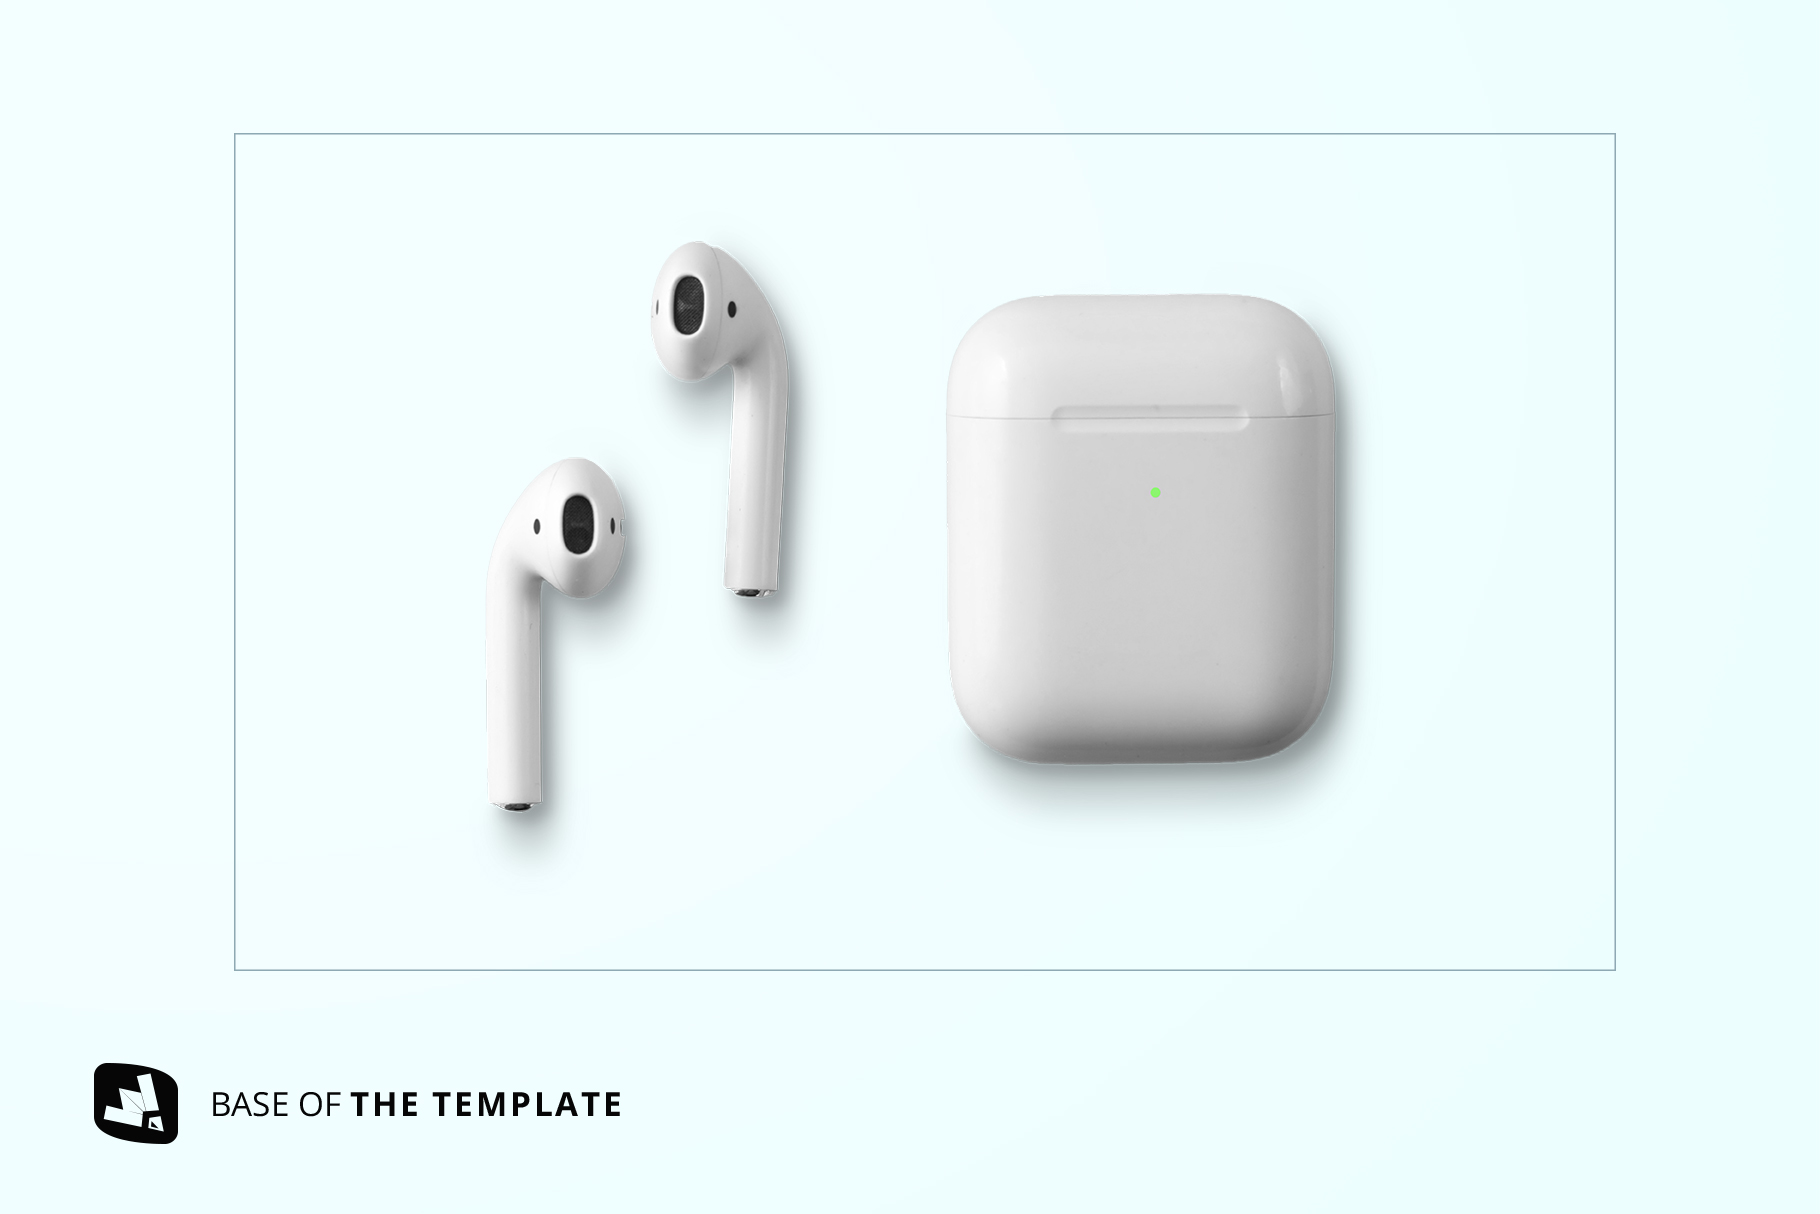 base image of the top view airpod case mockup